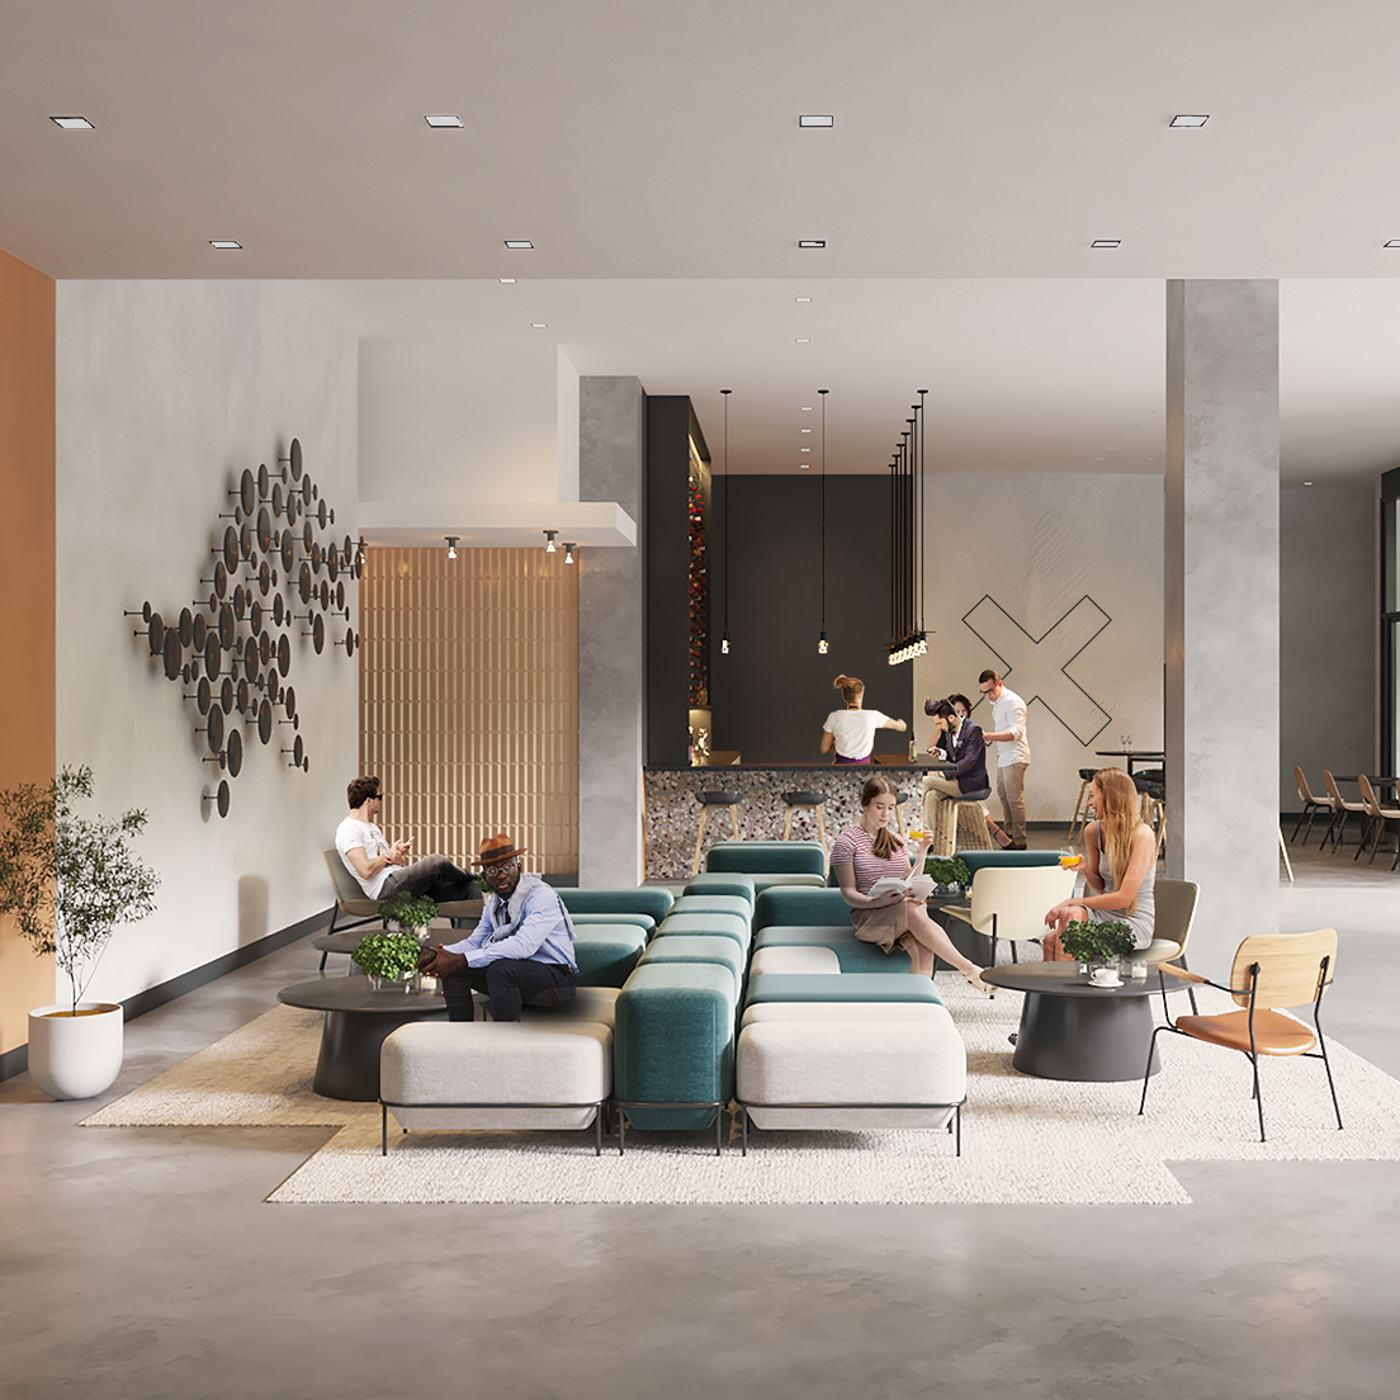 Resident lobby of XD2, with residents relaxing on sofas